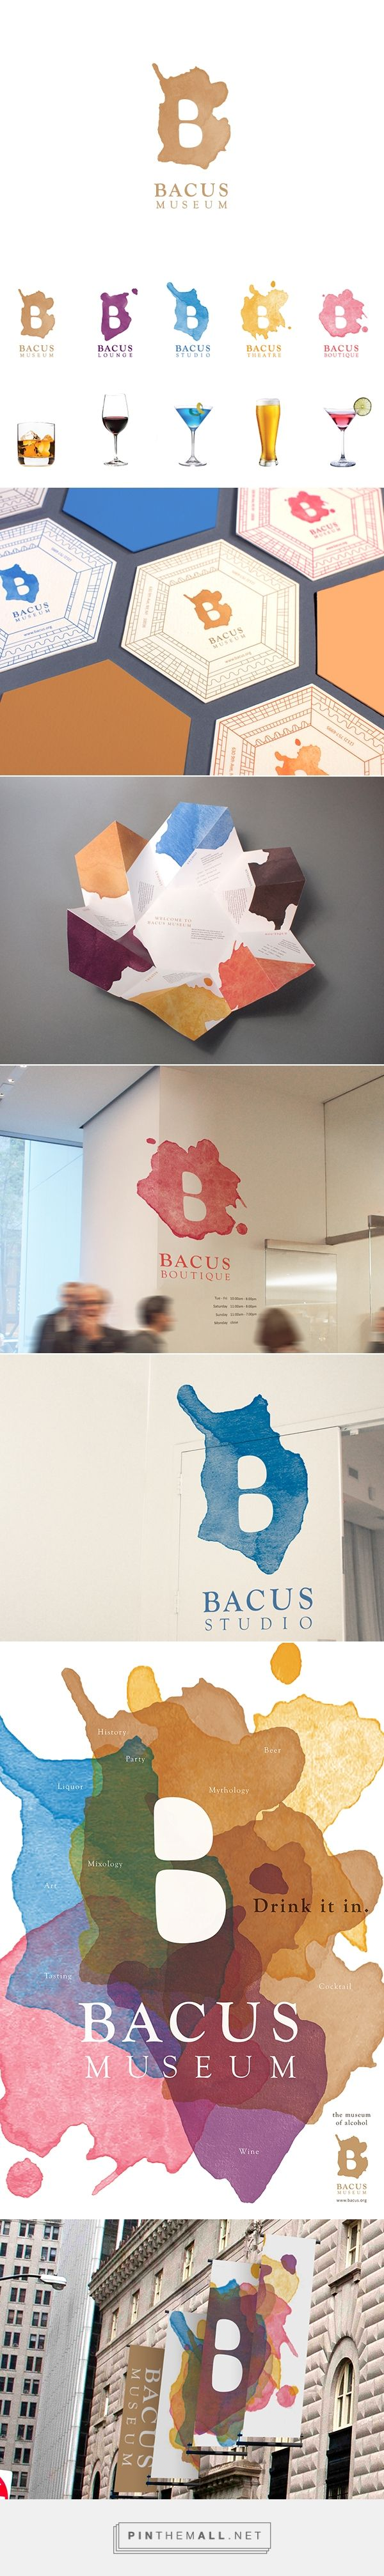 BACUS MUSEUM on Behance | Fivestar Branding – Design and Branding Agency & Inspiration Gallery